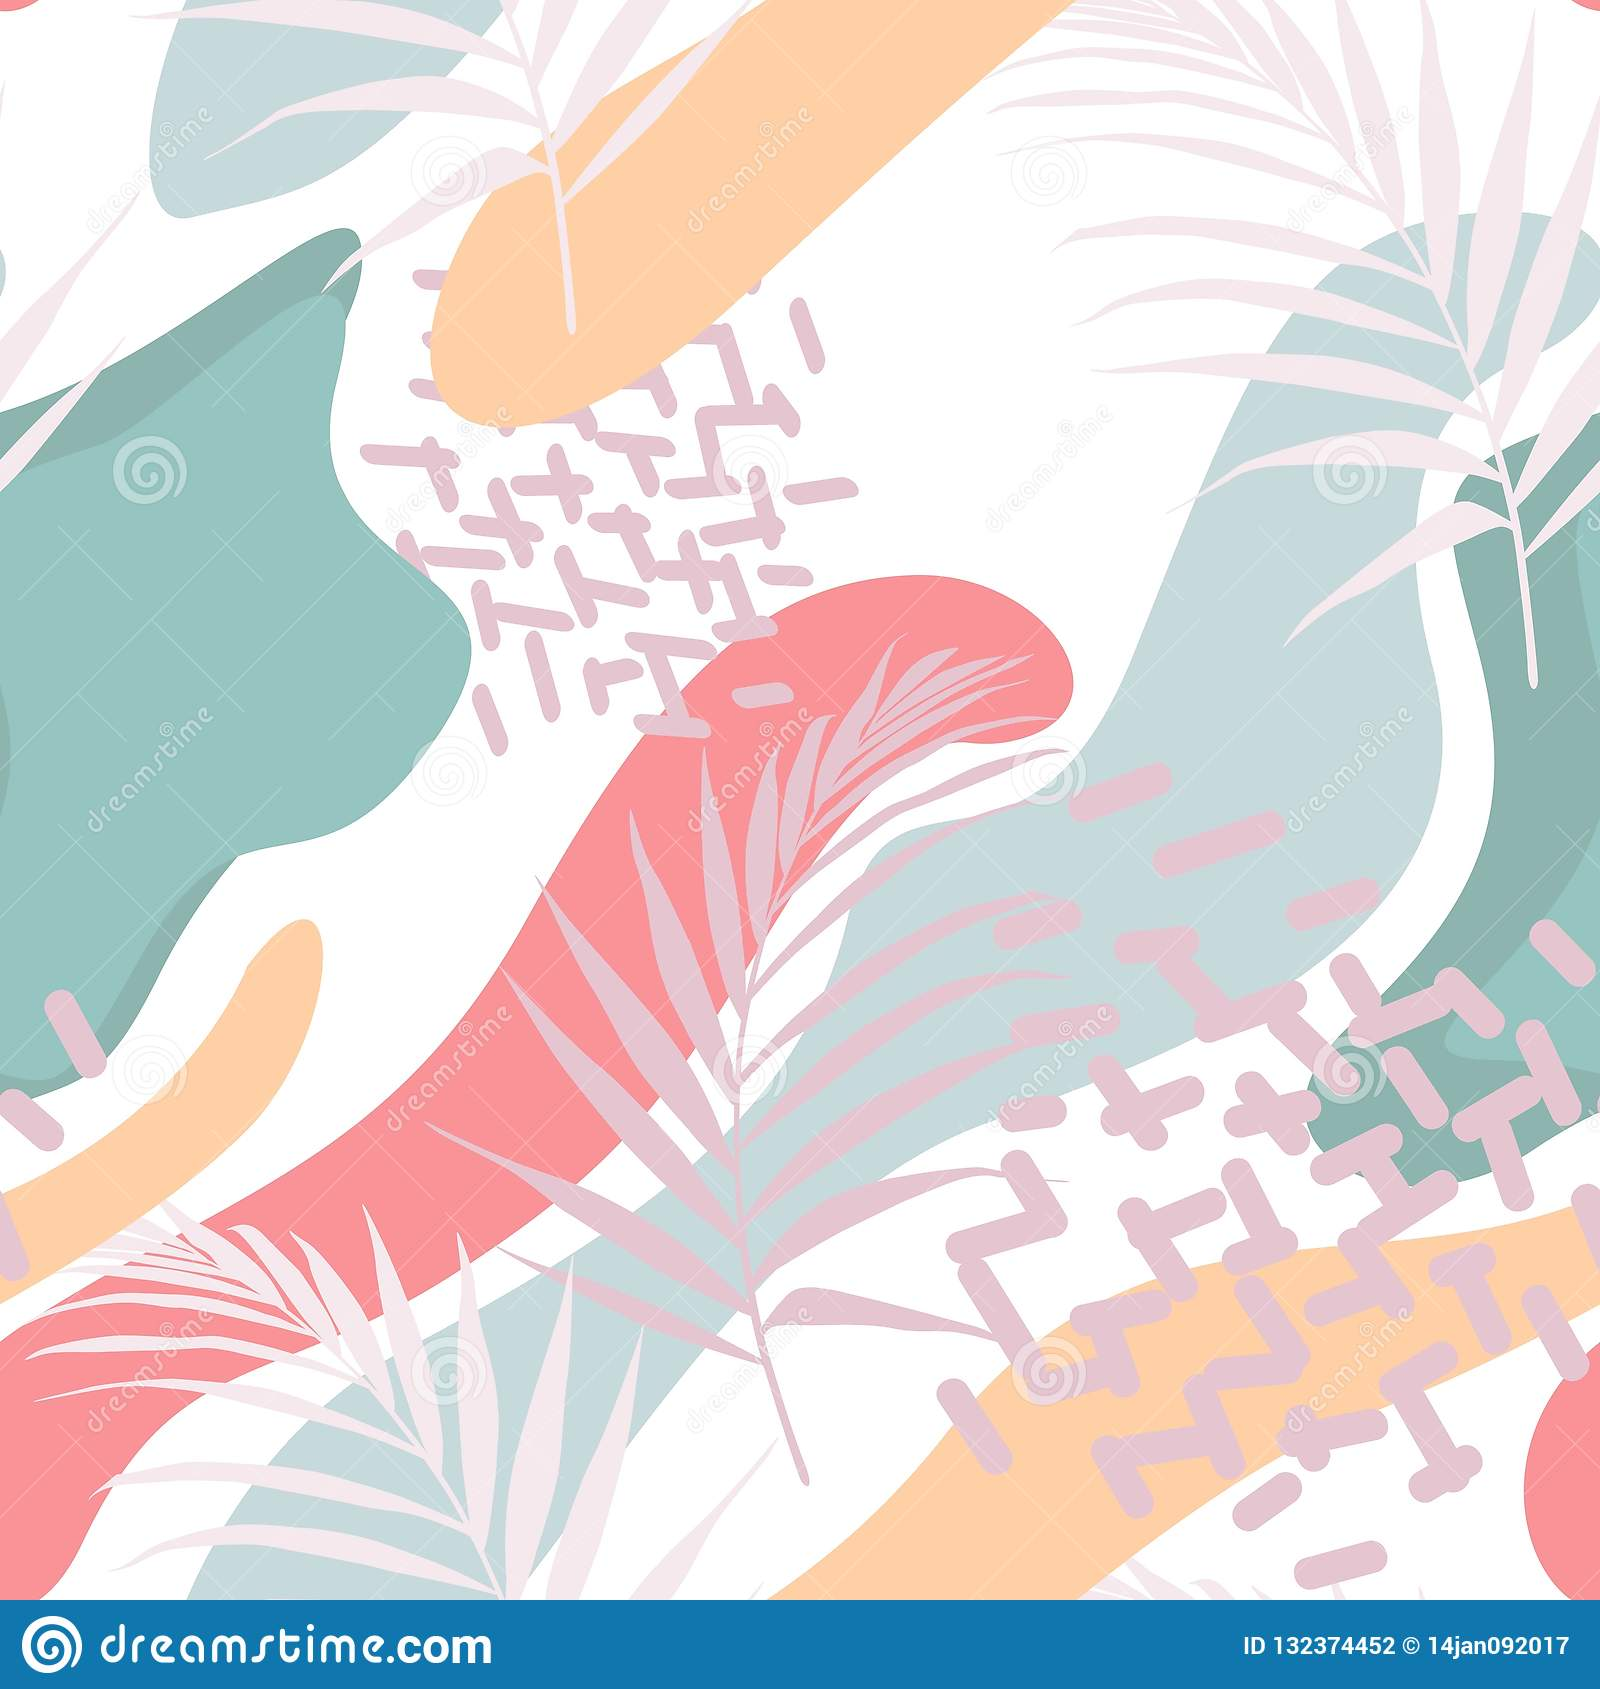 Abstract floral element, paper collage. Vector hand drawn illustration.